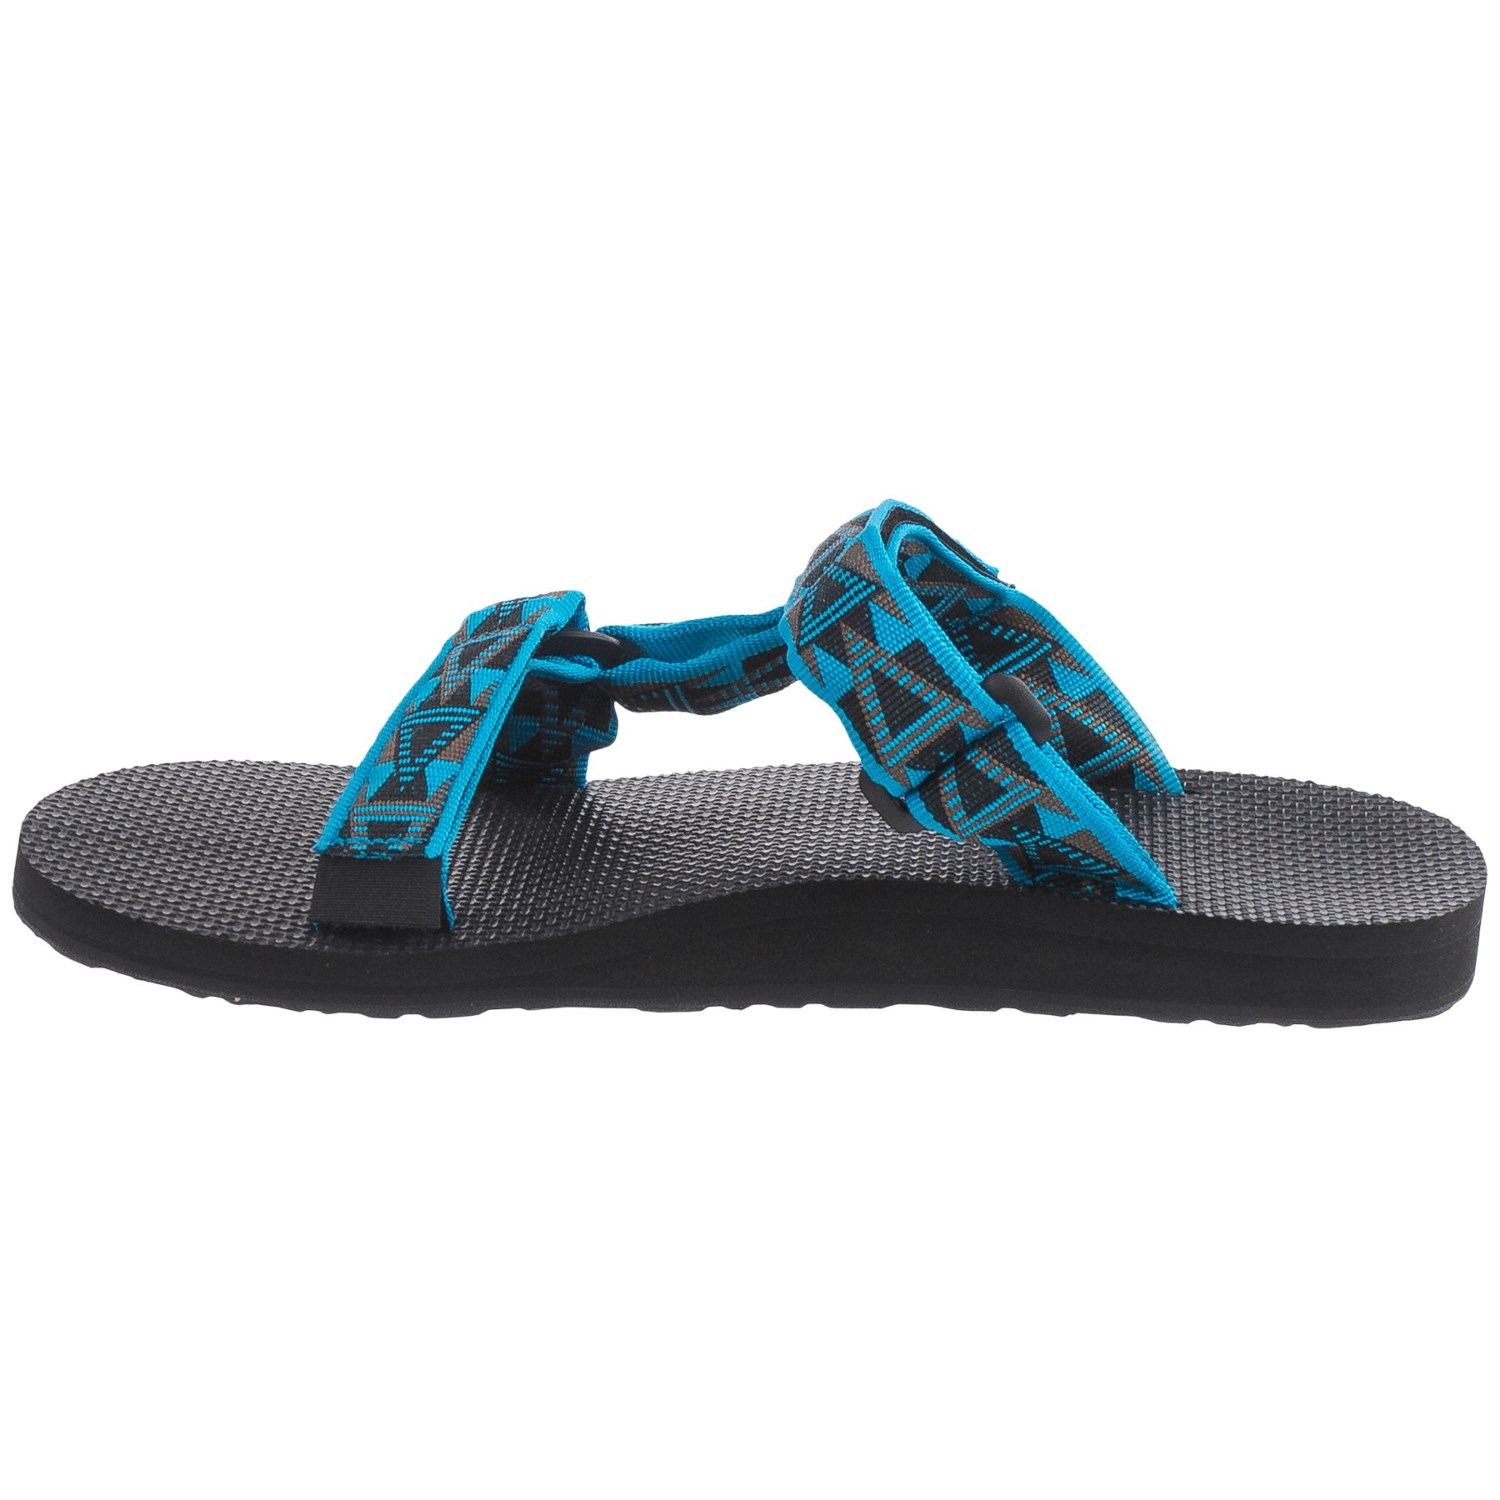 e594473e9 Teva Universal Slide Sandals (For Men) - Save 40%